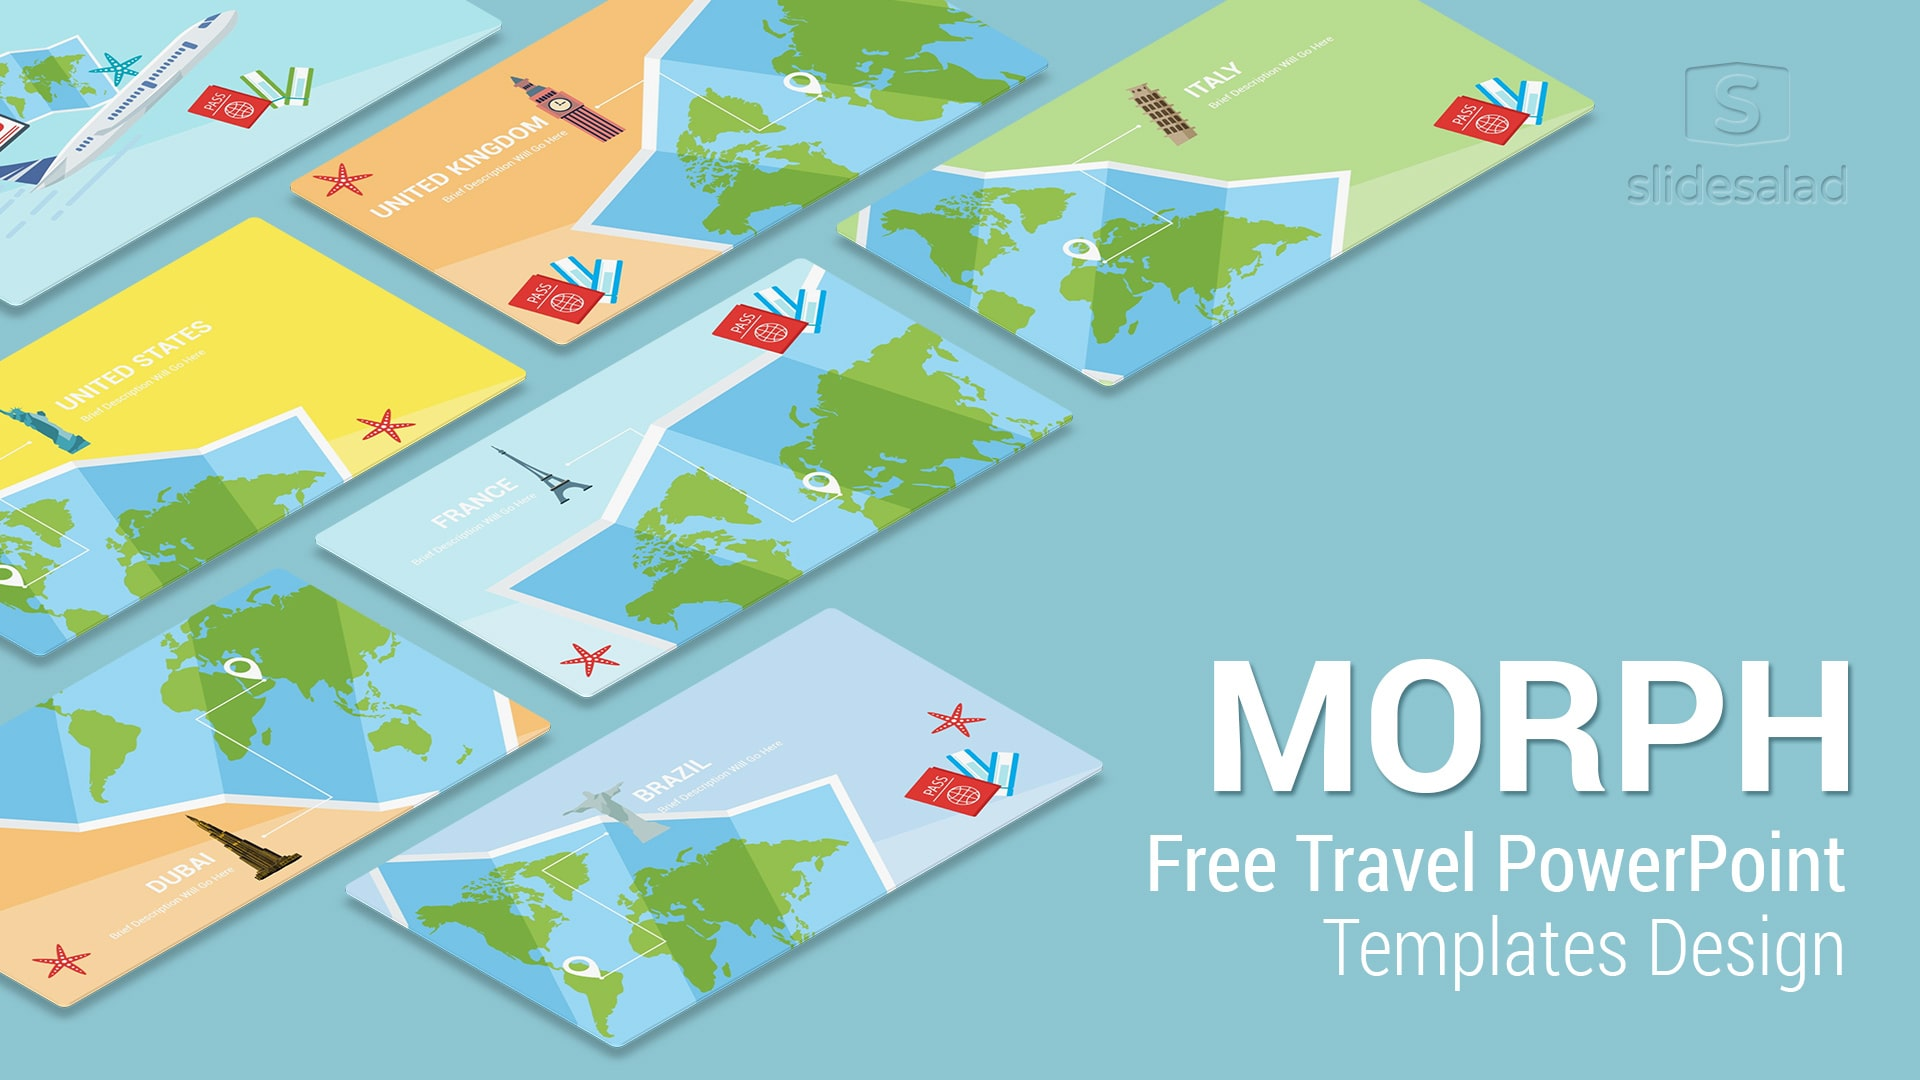 Morph Travel: Free Travel PowerPoint Templates Design Slides – Most popular Free Travel and Tourism PPT Templates